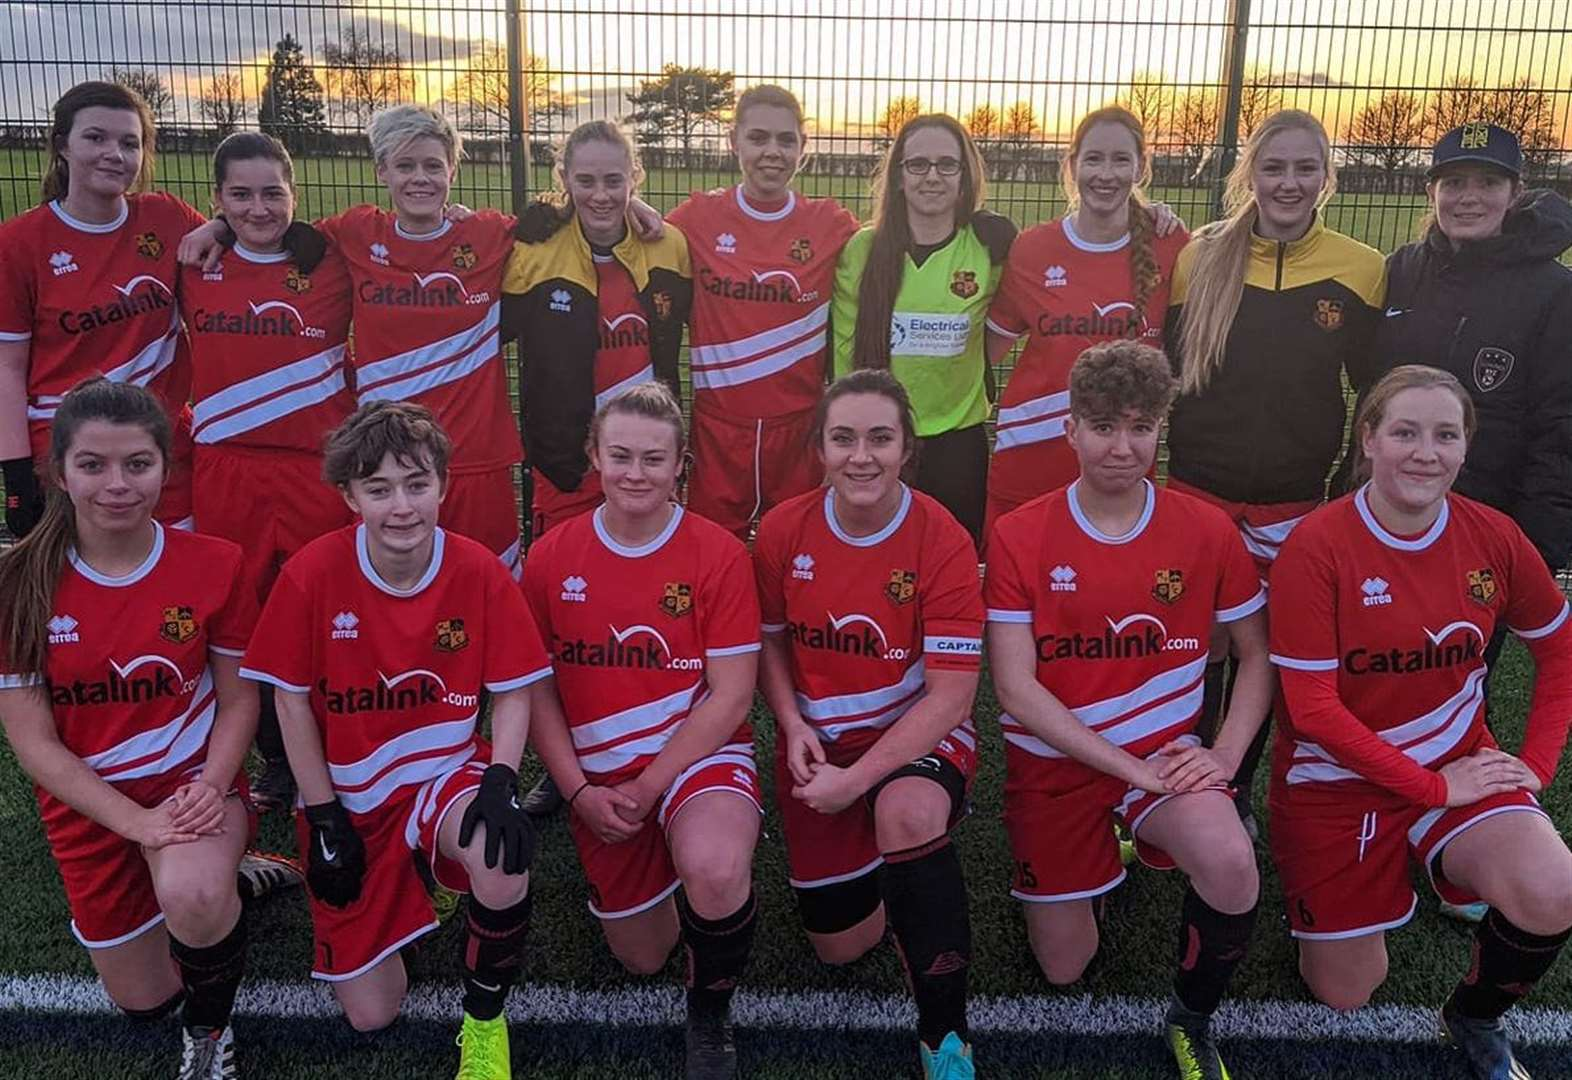 Ladies rack up biggest victory at Cambourne